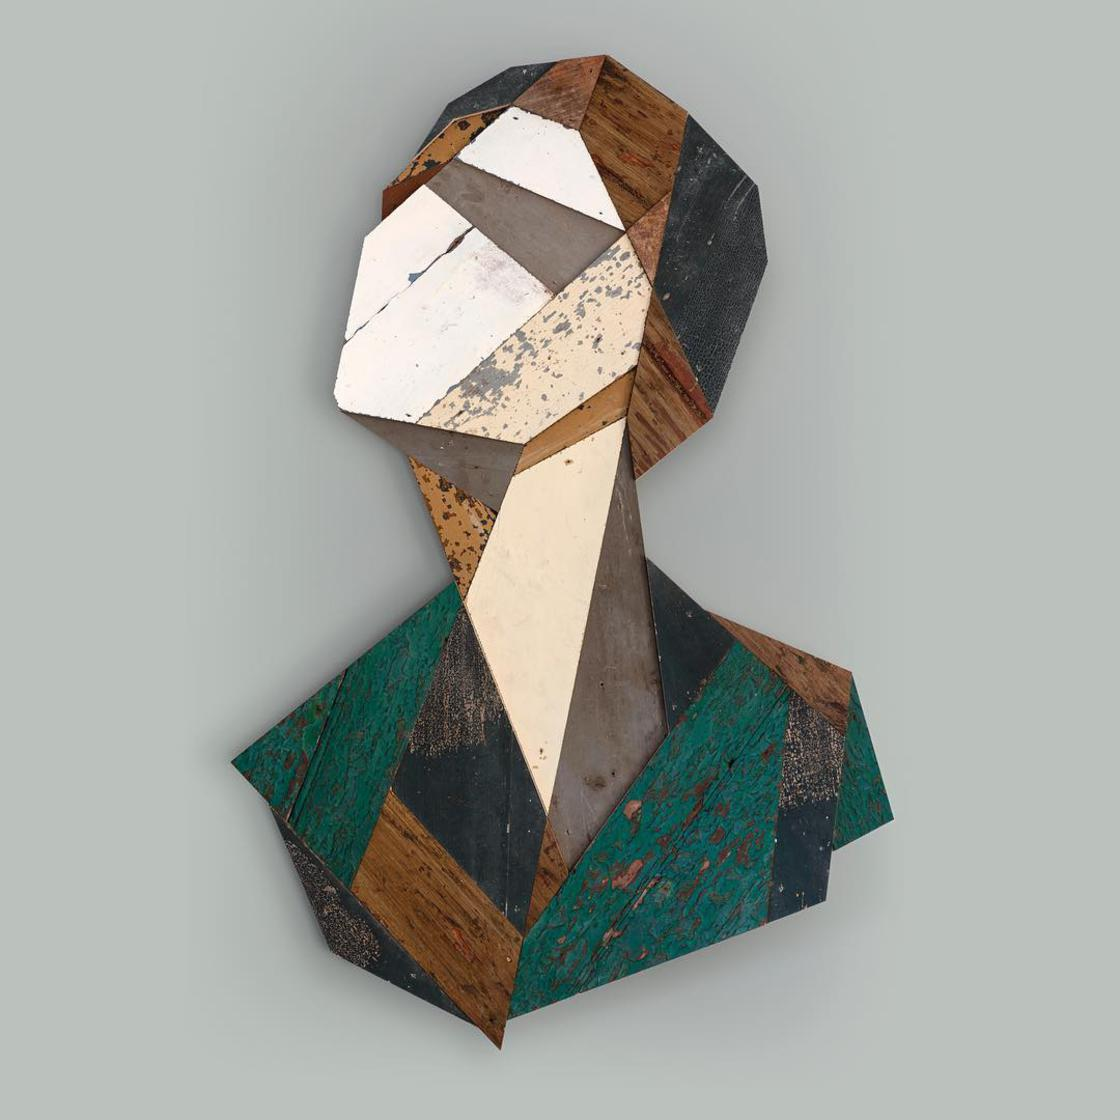 Strook – This street artist recycles wood into geometric portraits